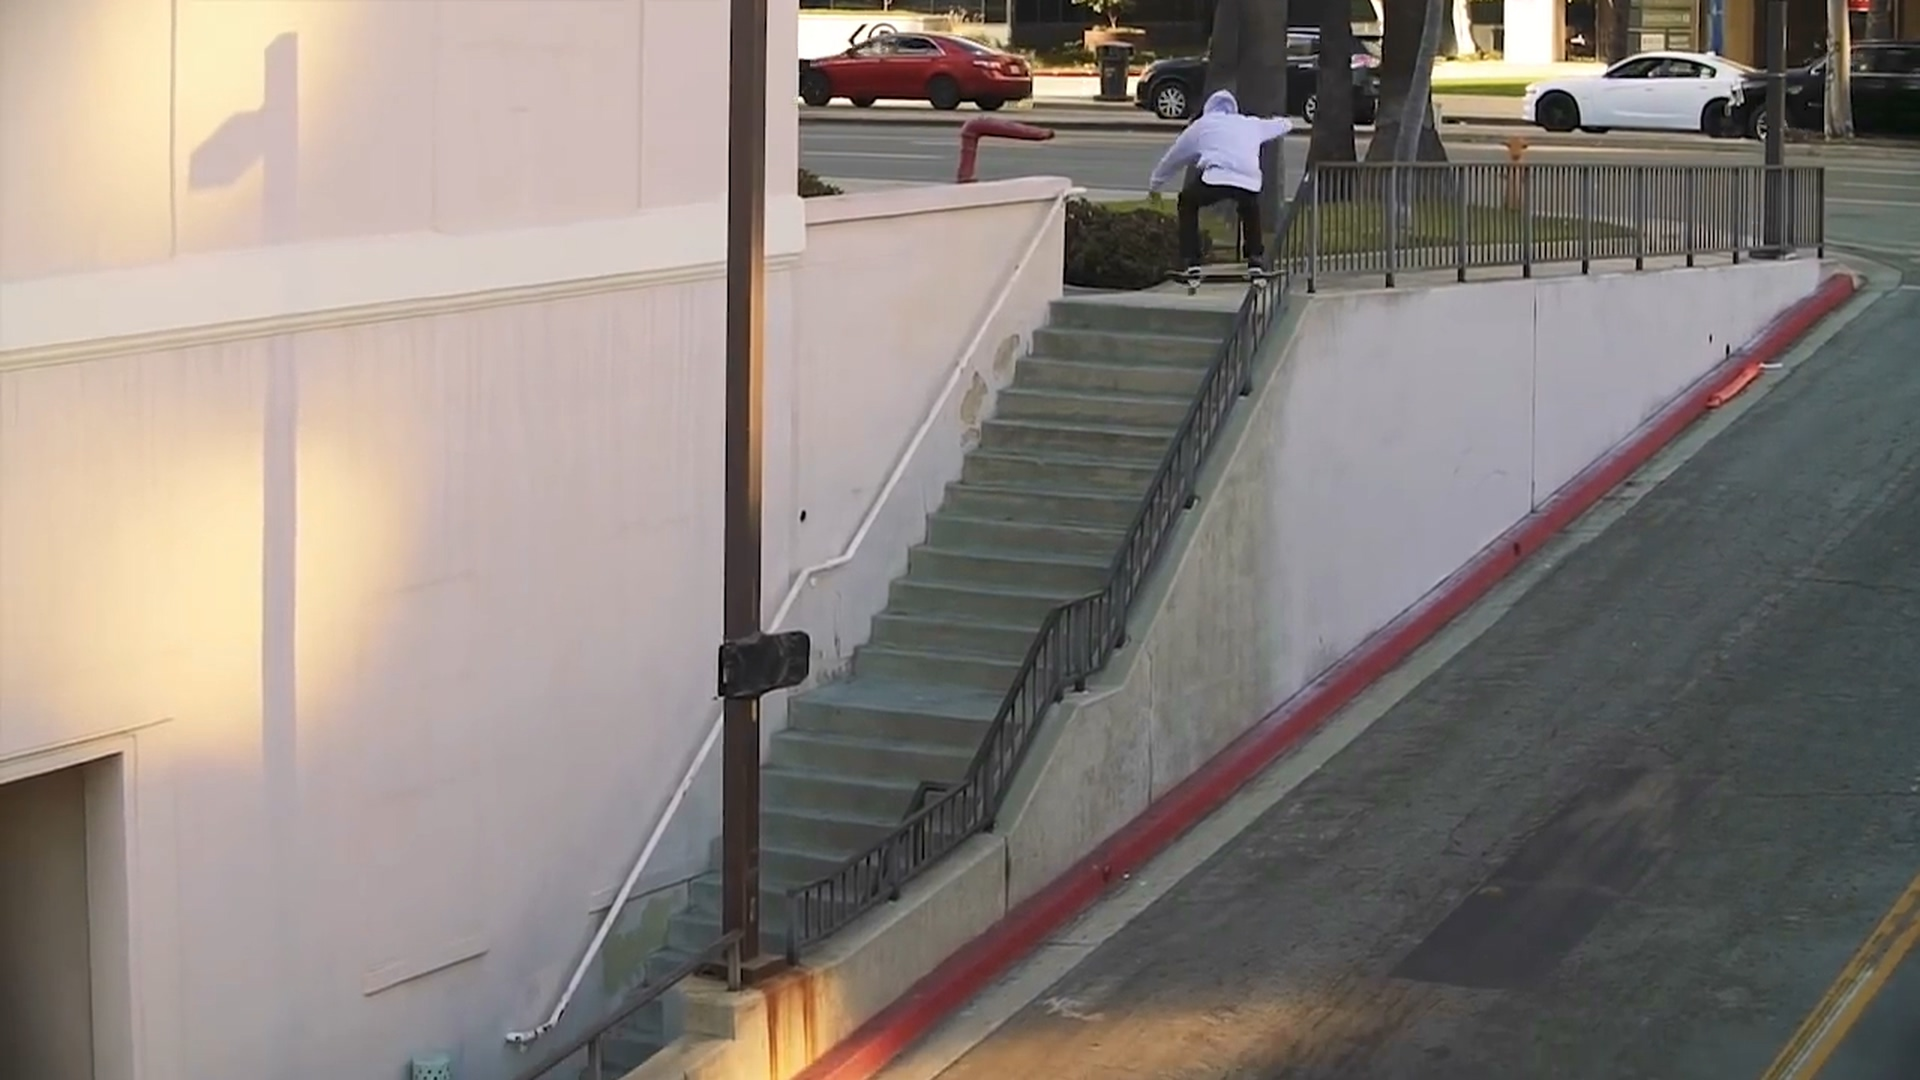 etnies ALBUM_ Trevor McClung FULL PART.mp4_20180514_172620.250